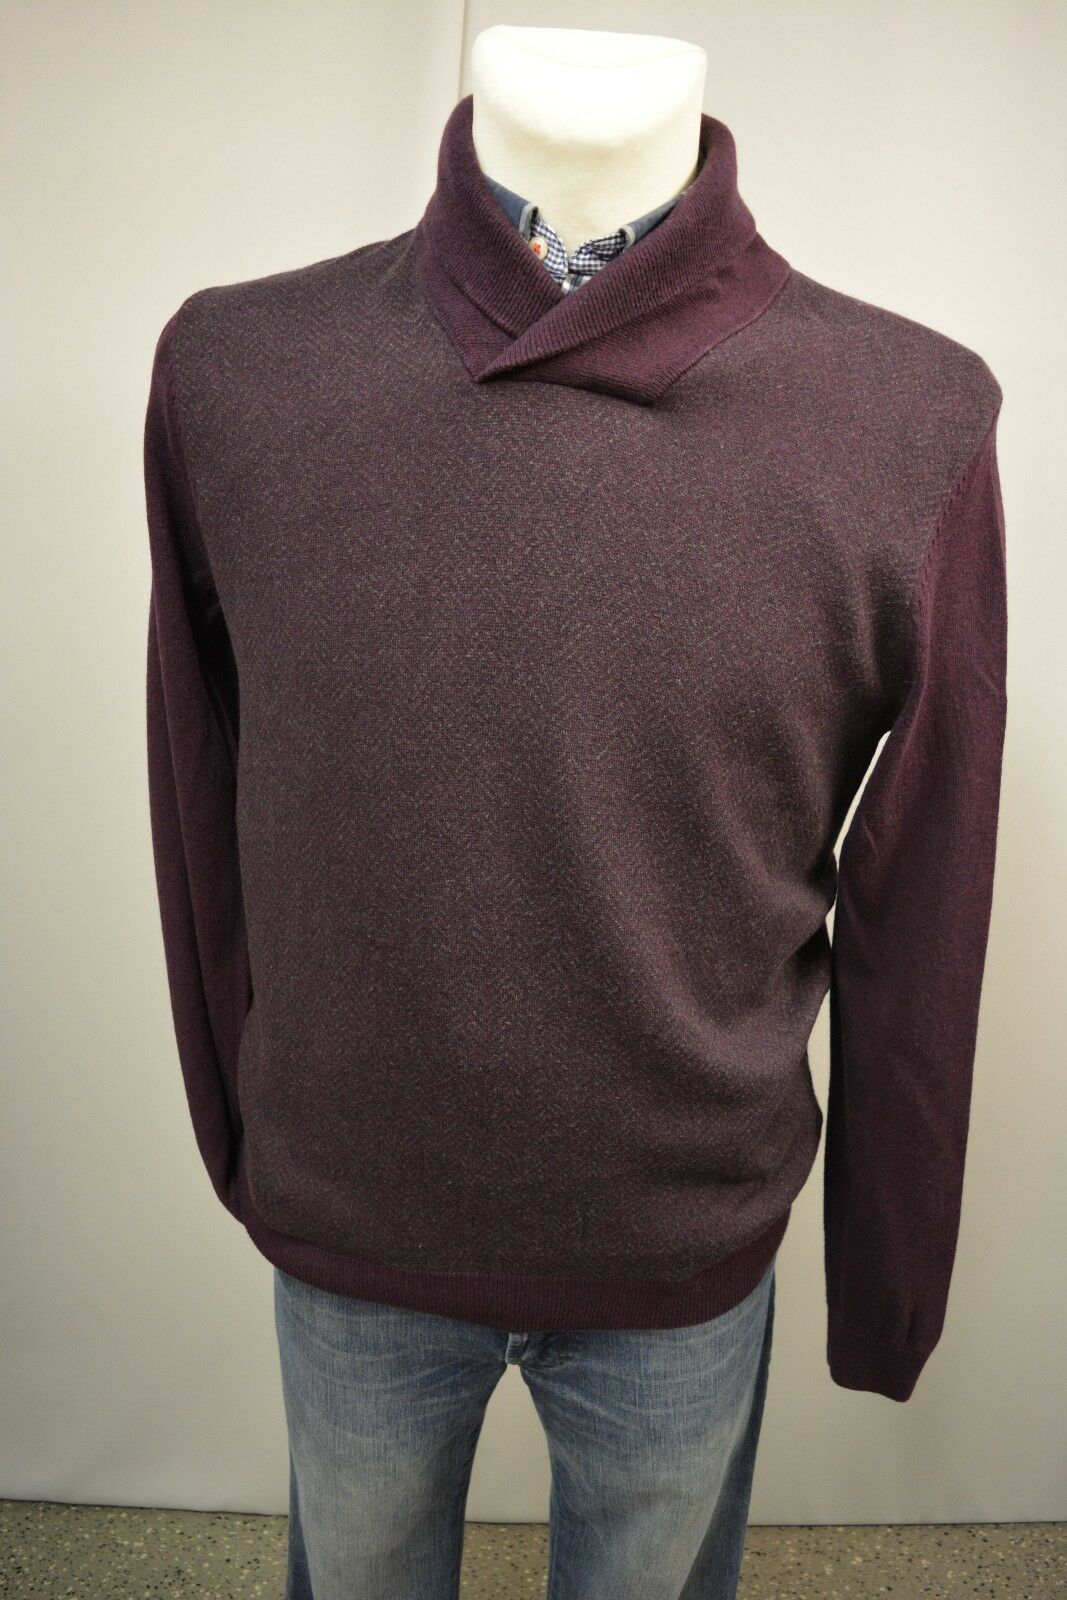 M Coton BY WESTBURY Hommes amp;a Cachemire BY Cachemire Pull Tricot c H0xxfqBwF